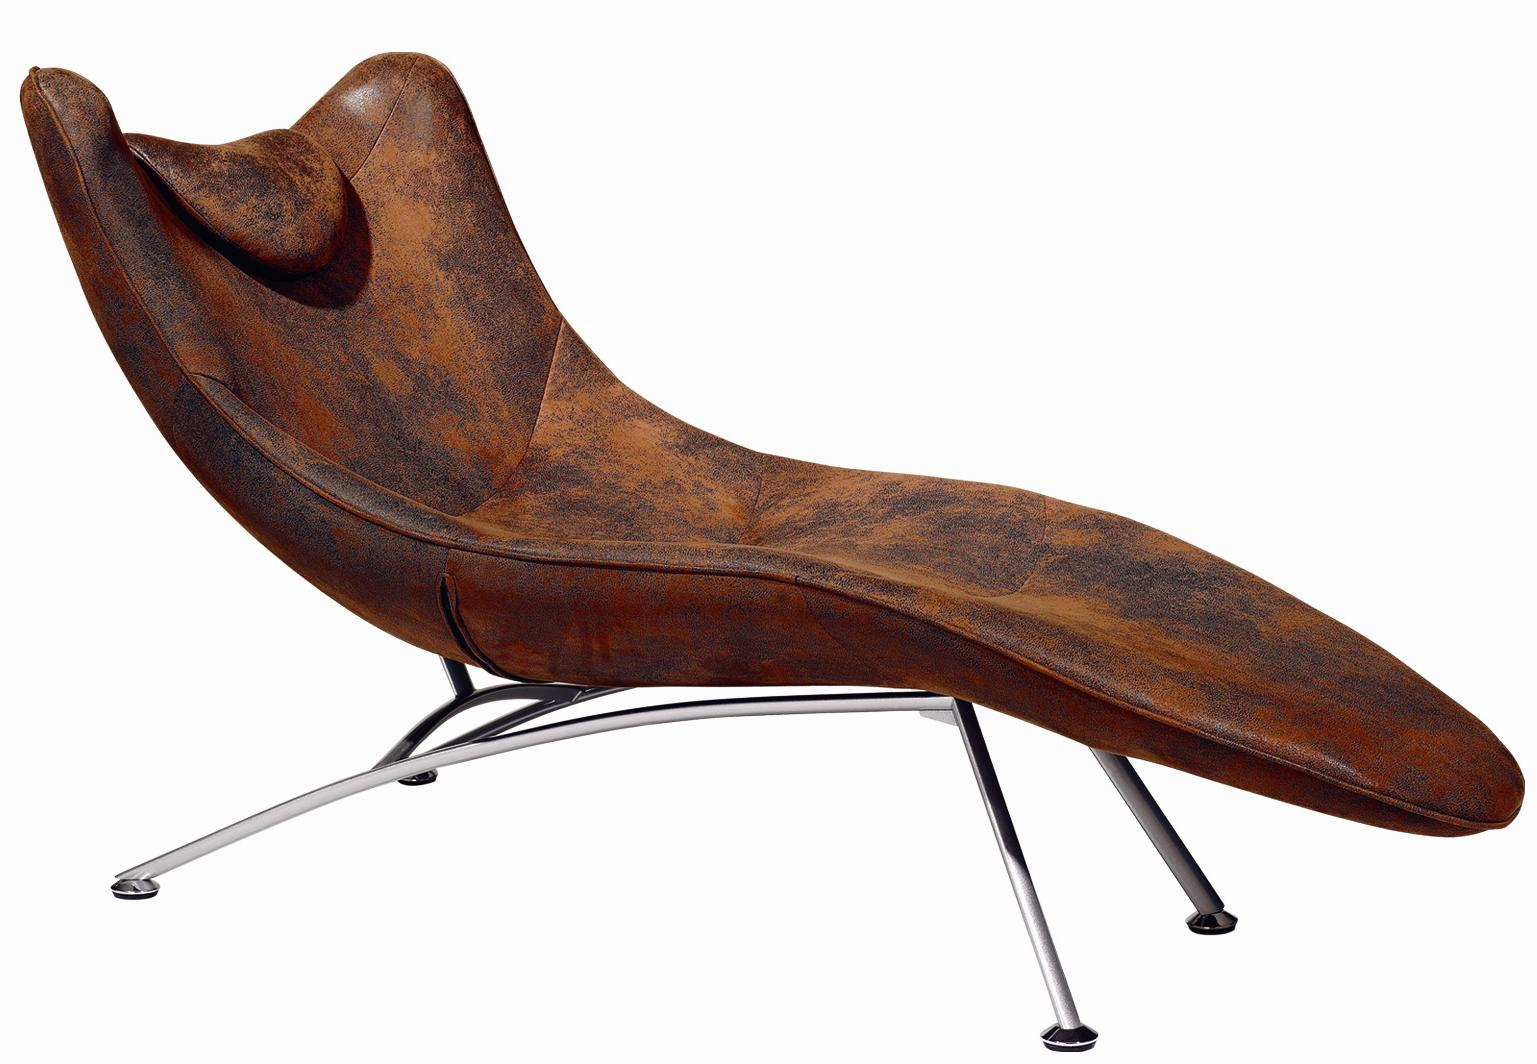 Picture of: Brown chaise lounge chair